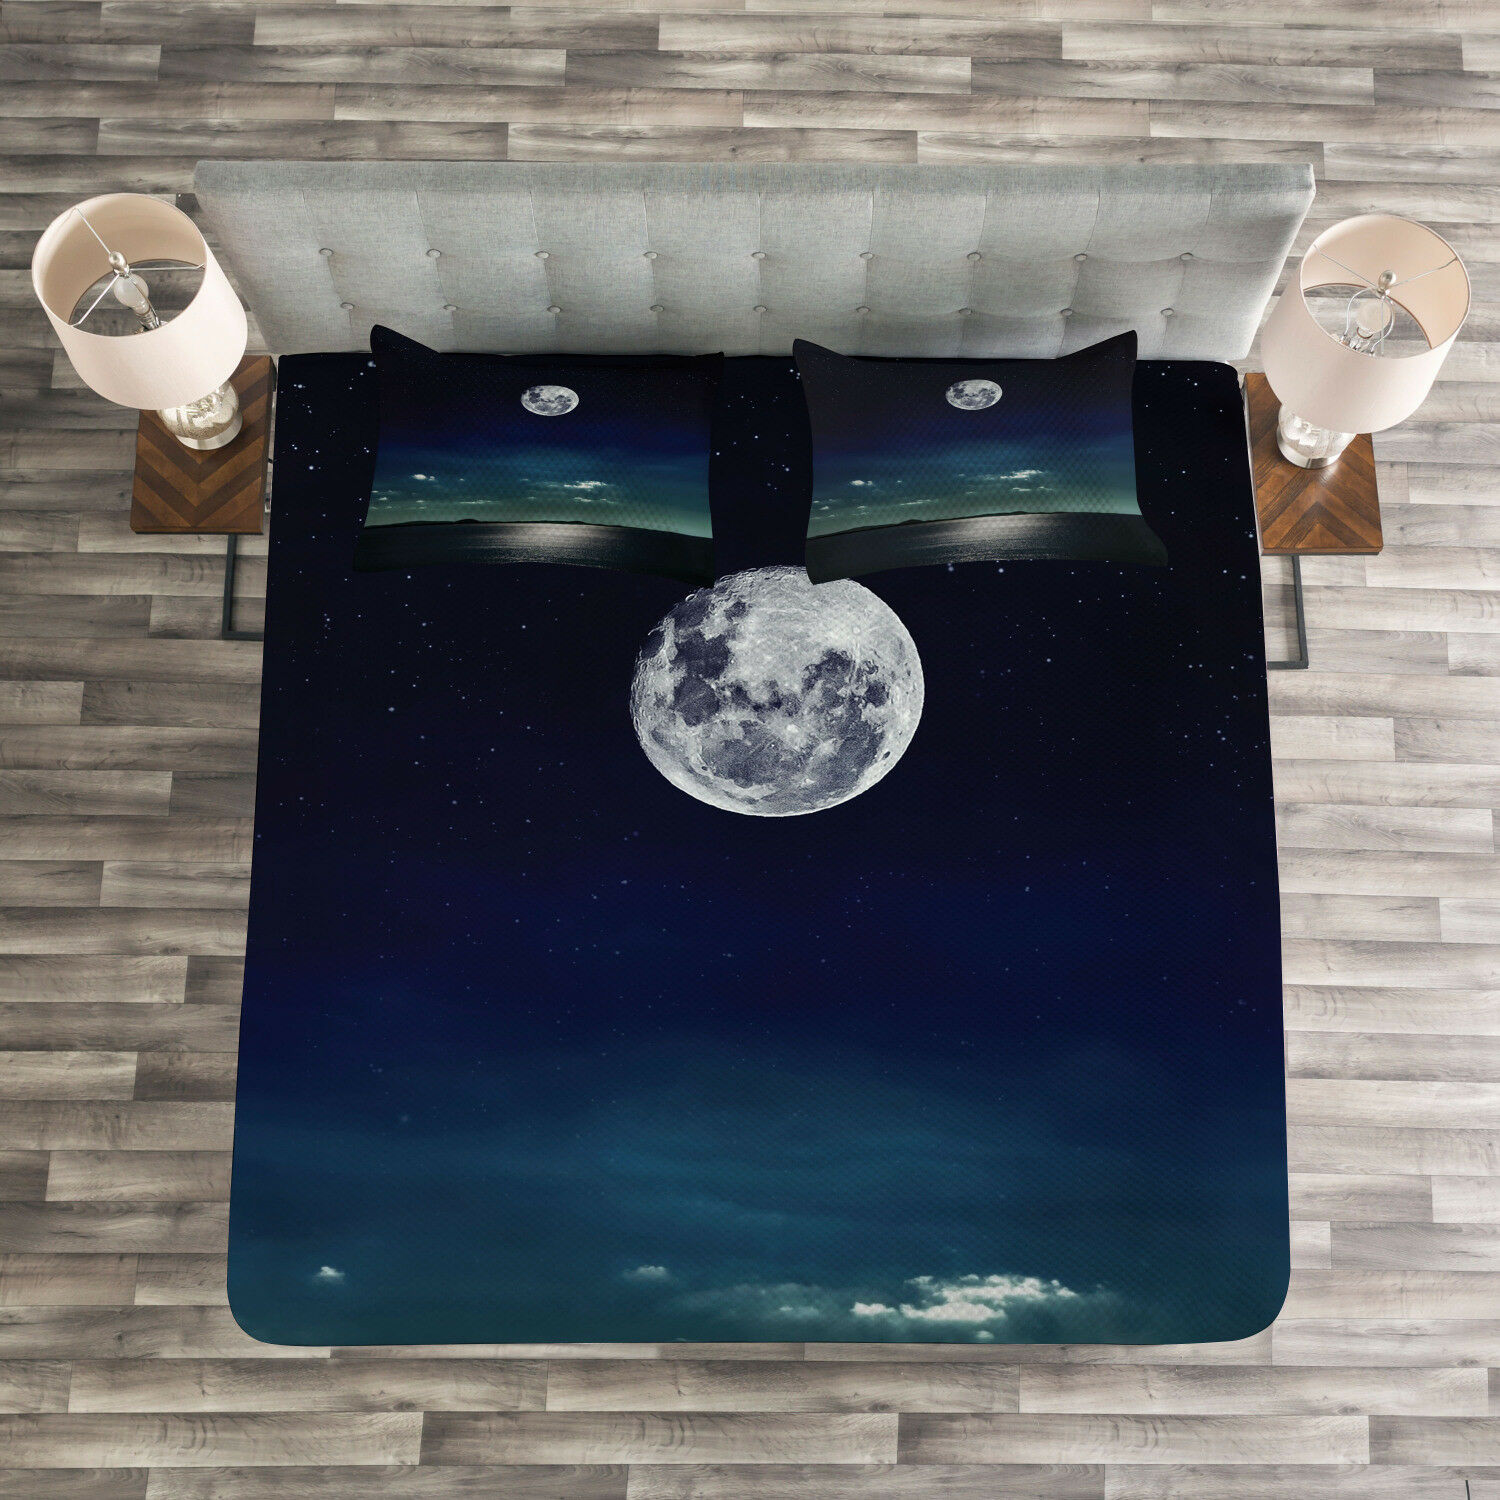 Ocean Quilted Bedspread & Pillow Shams Set, Full Moon in the Sea Print